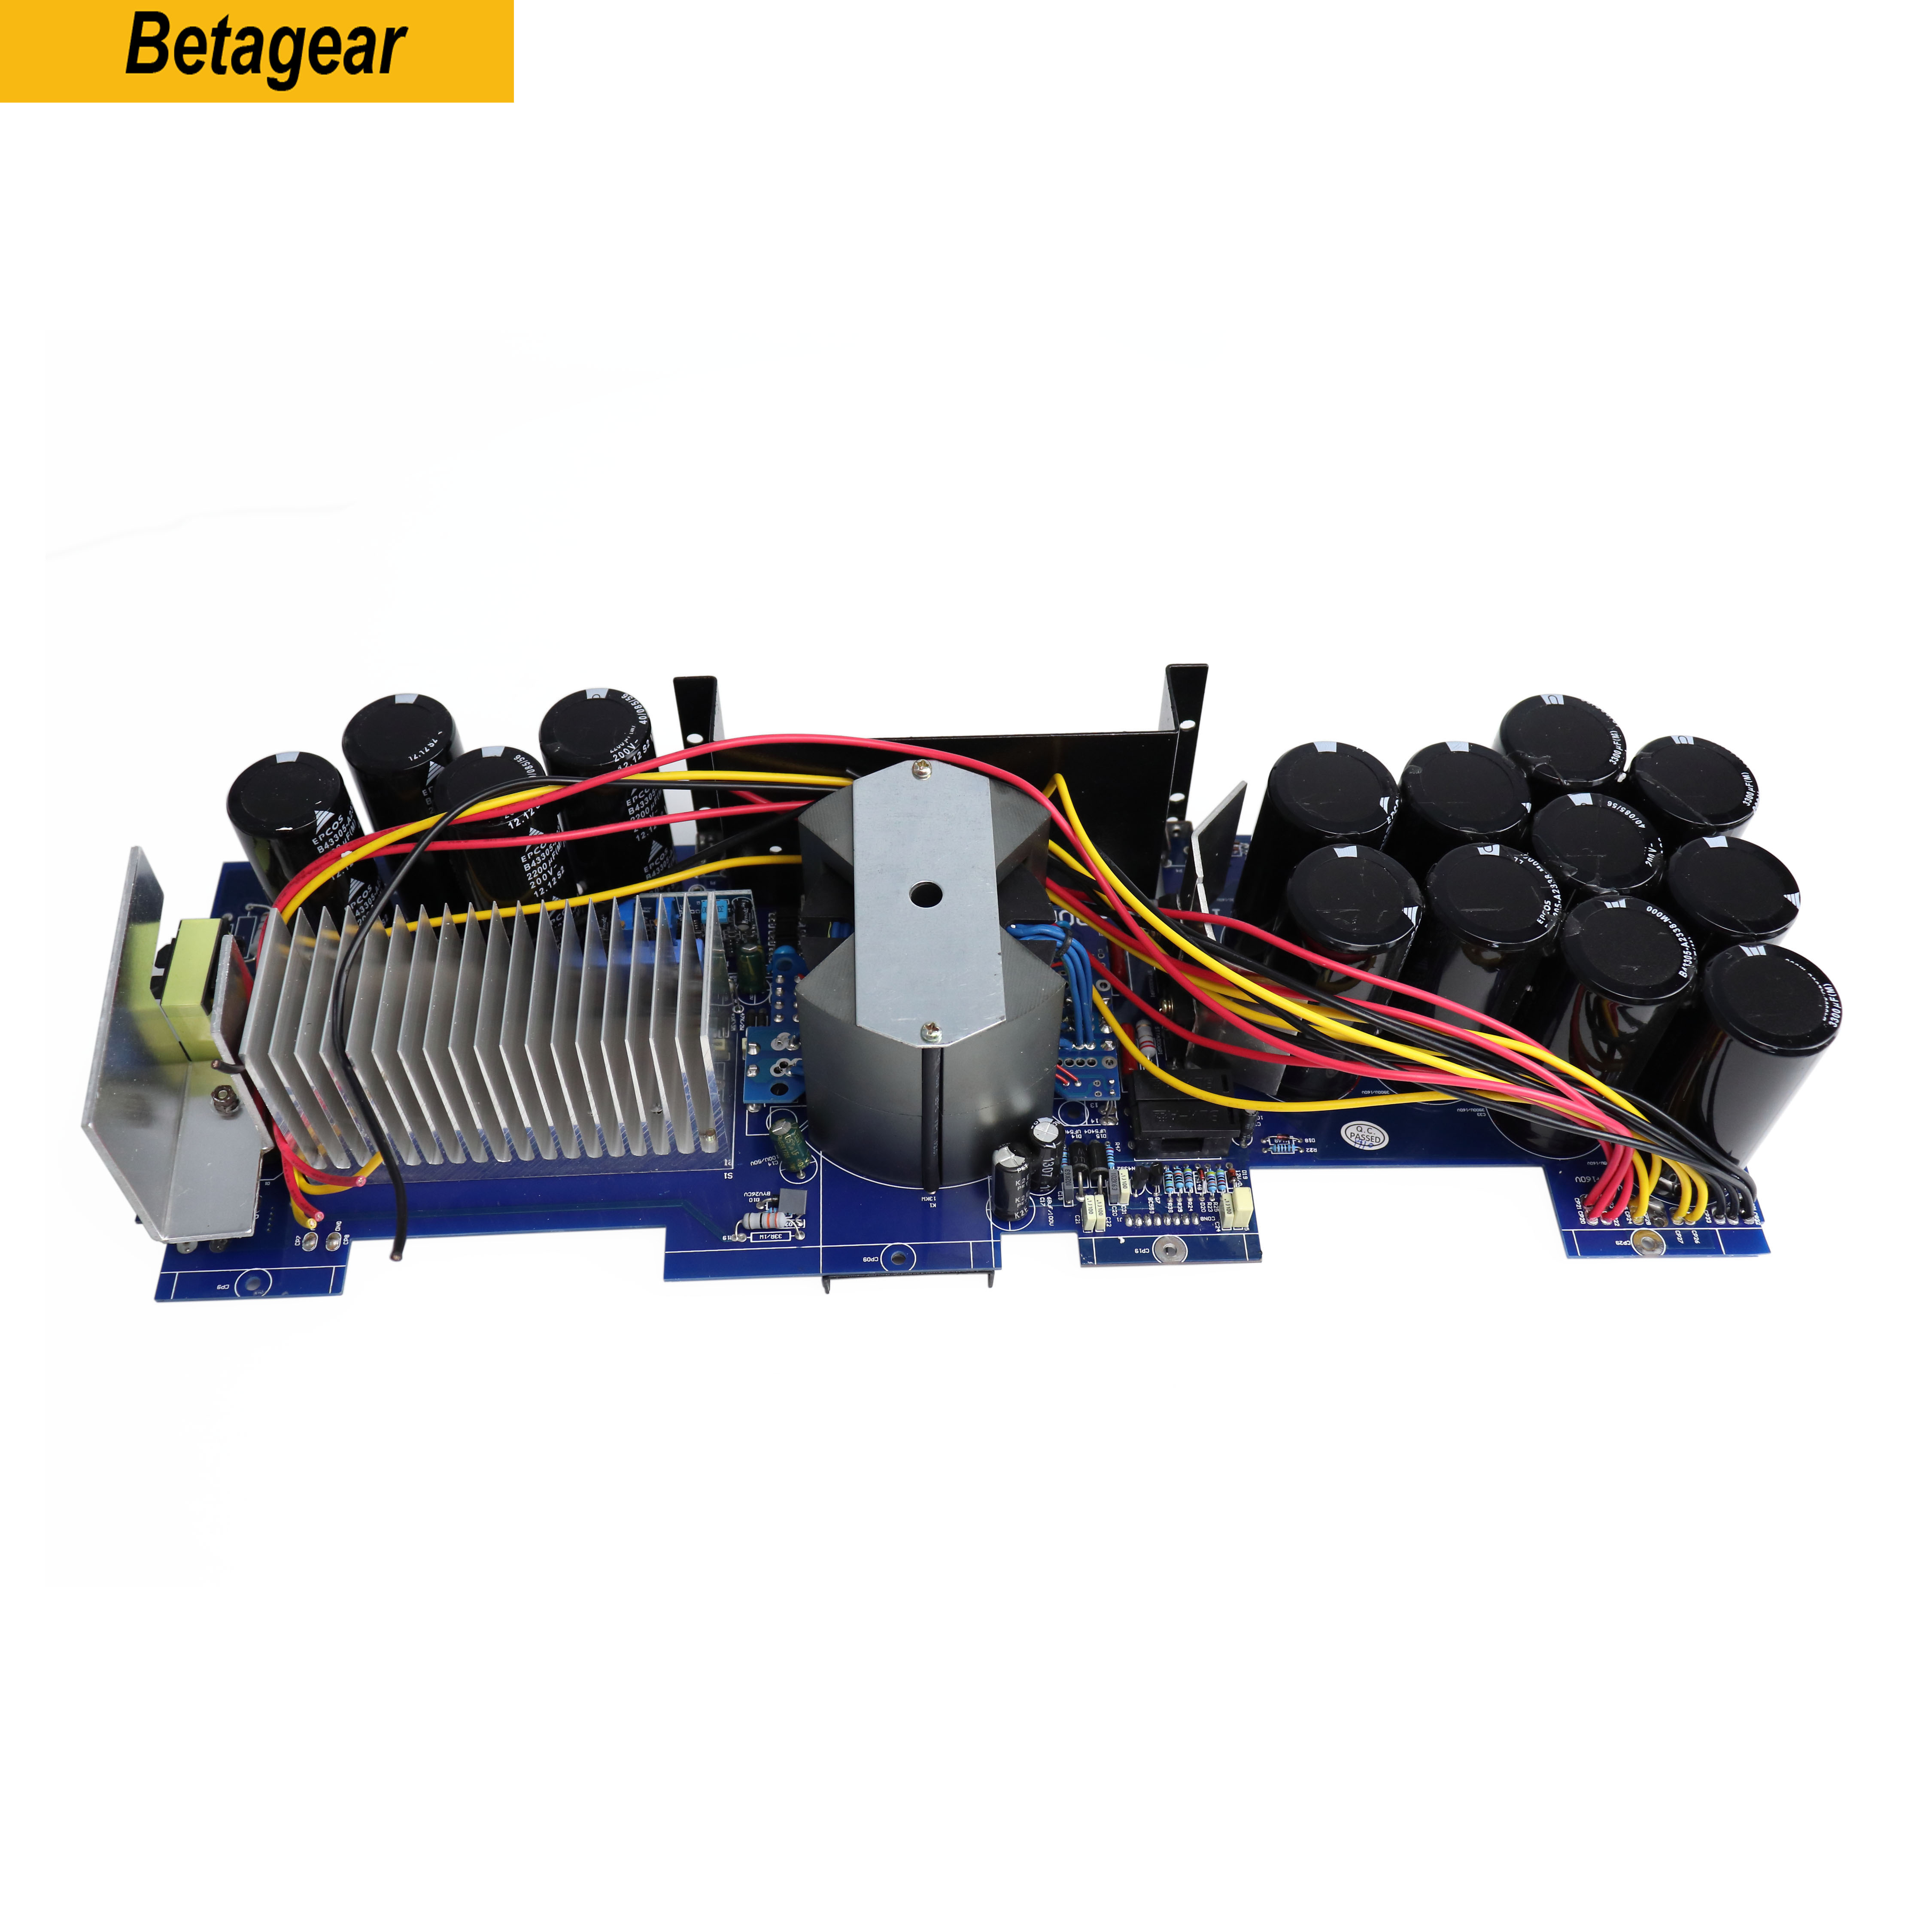 Betagear fp14000q amplifier main board  spare parts board mother board   professional amplifier parts|Stage Audio| |  - title=